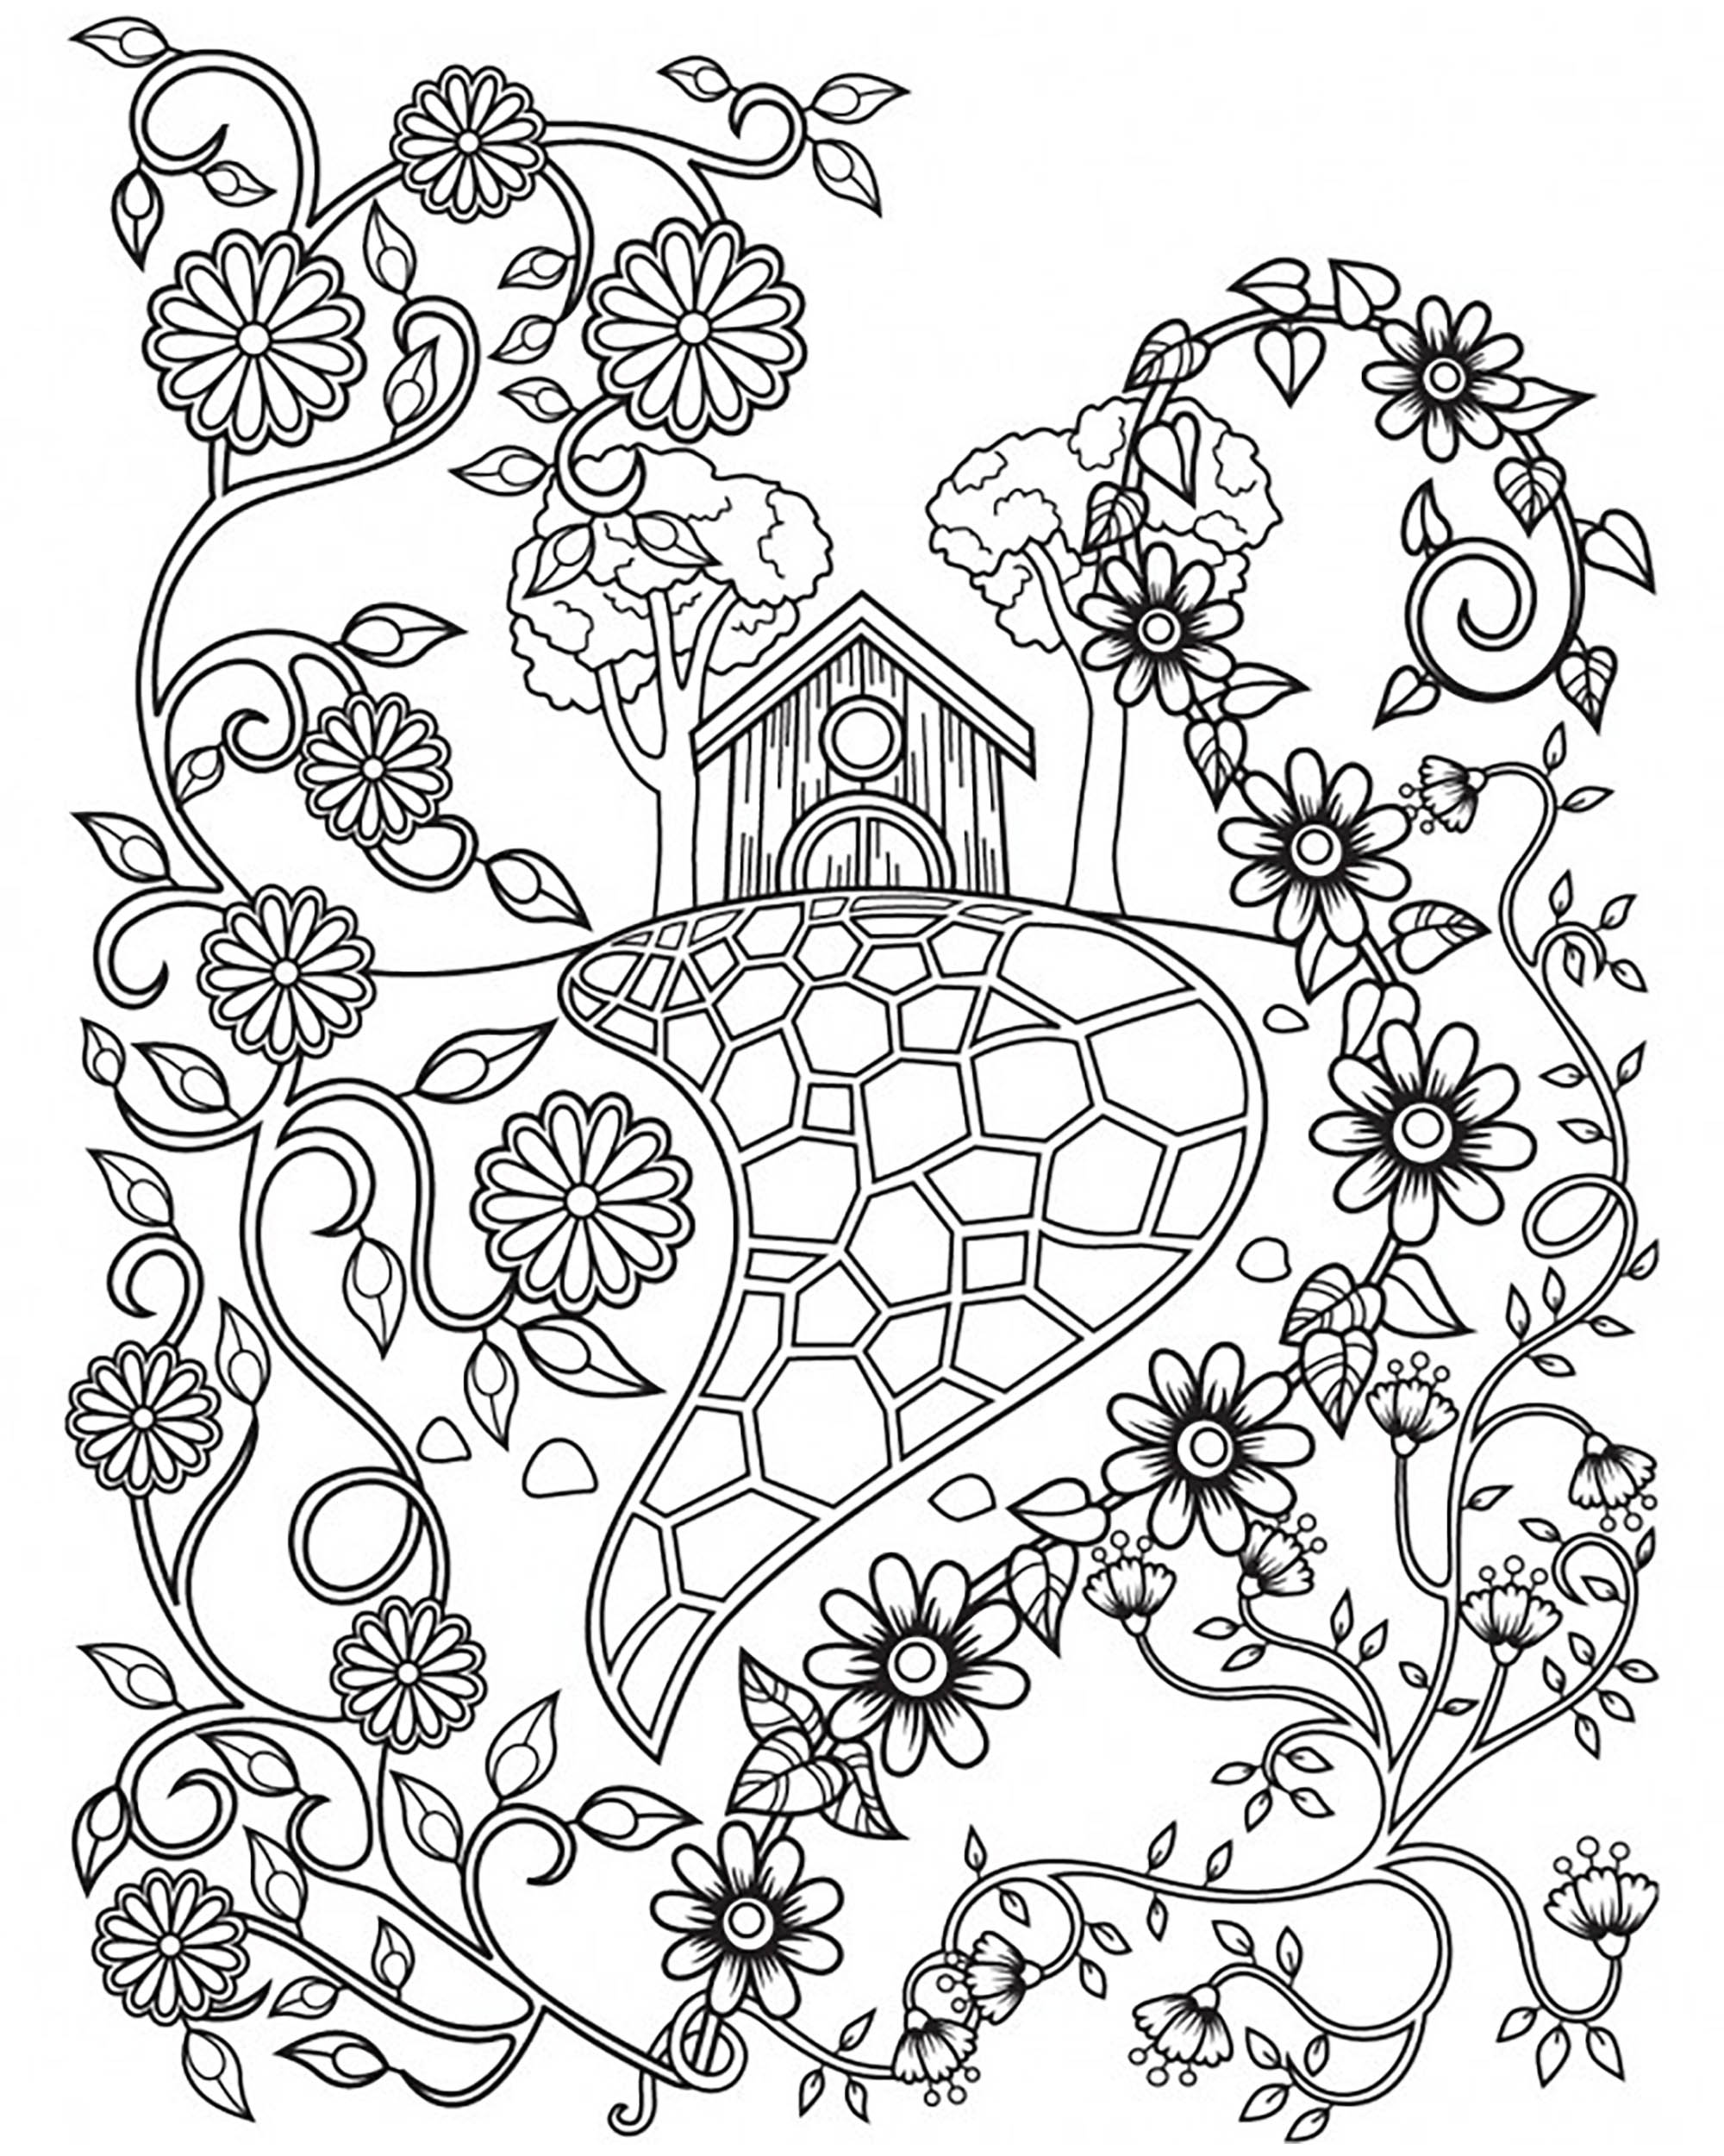 hansel si gretel coloring pages - photo#29